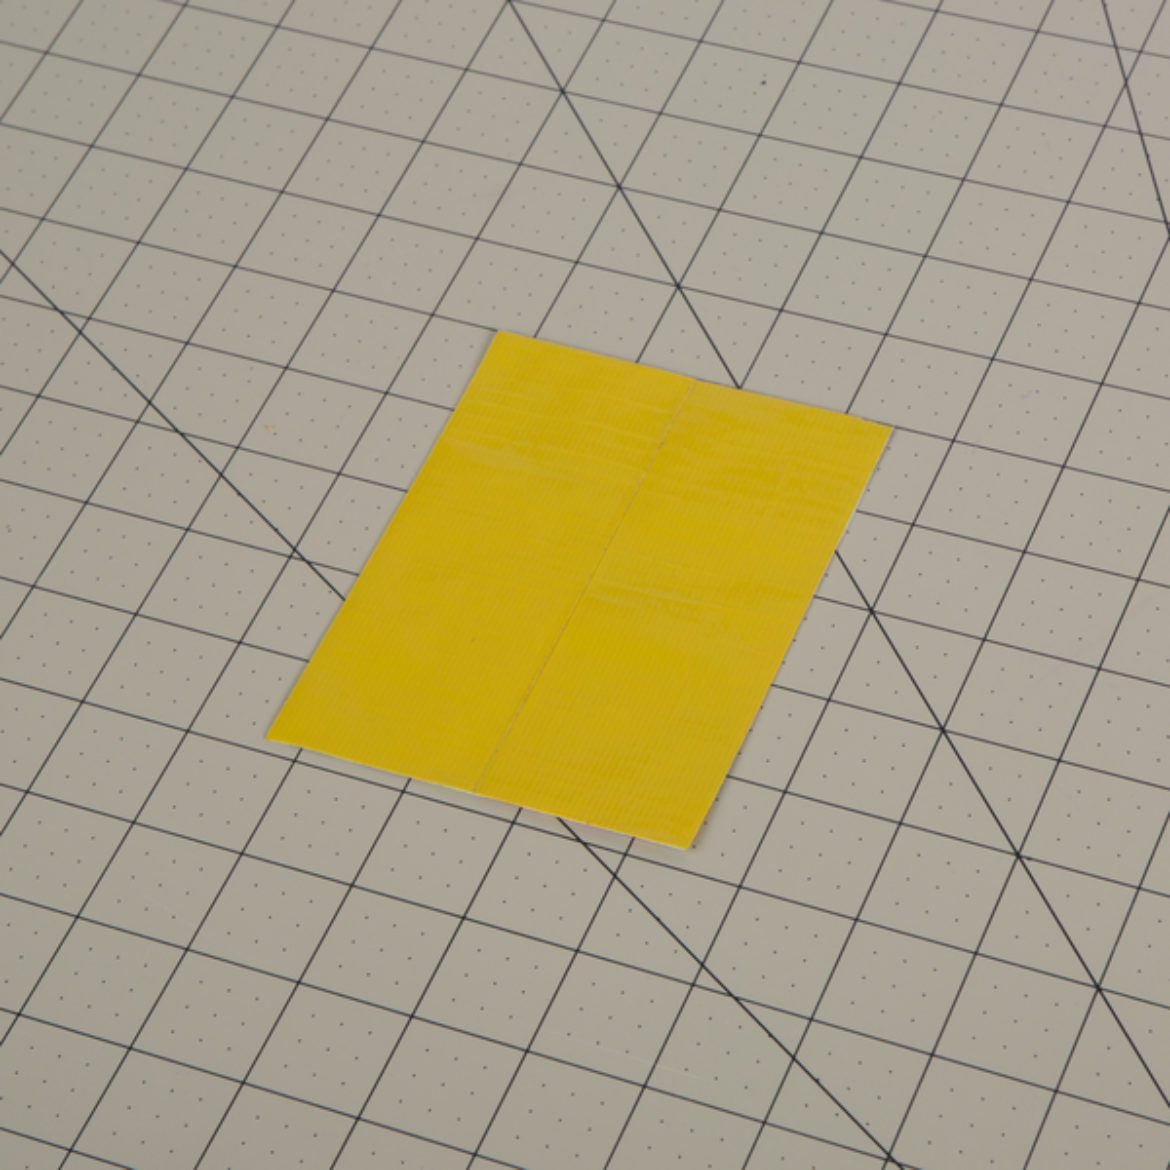 tape placed on the backside of the sheet from the previous step to form a double sided fabric